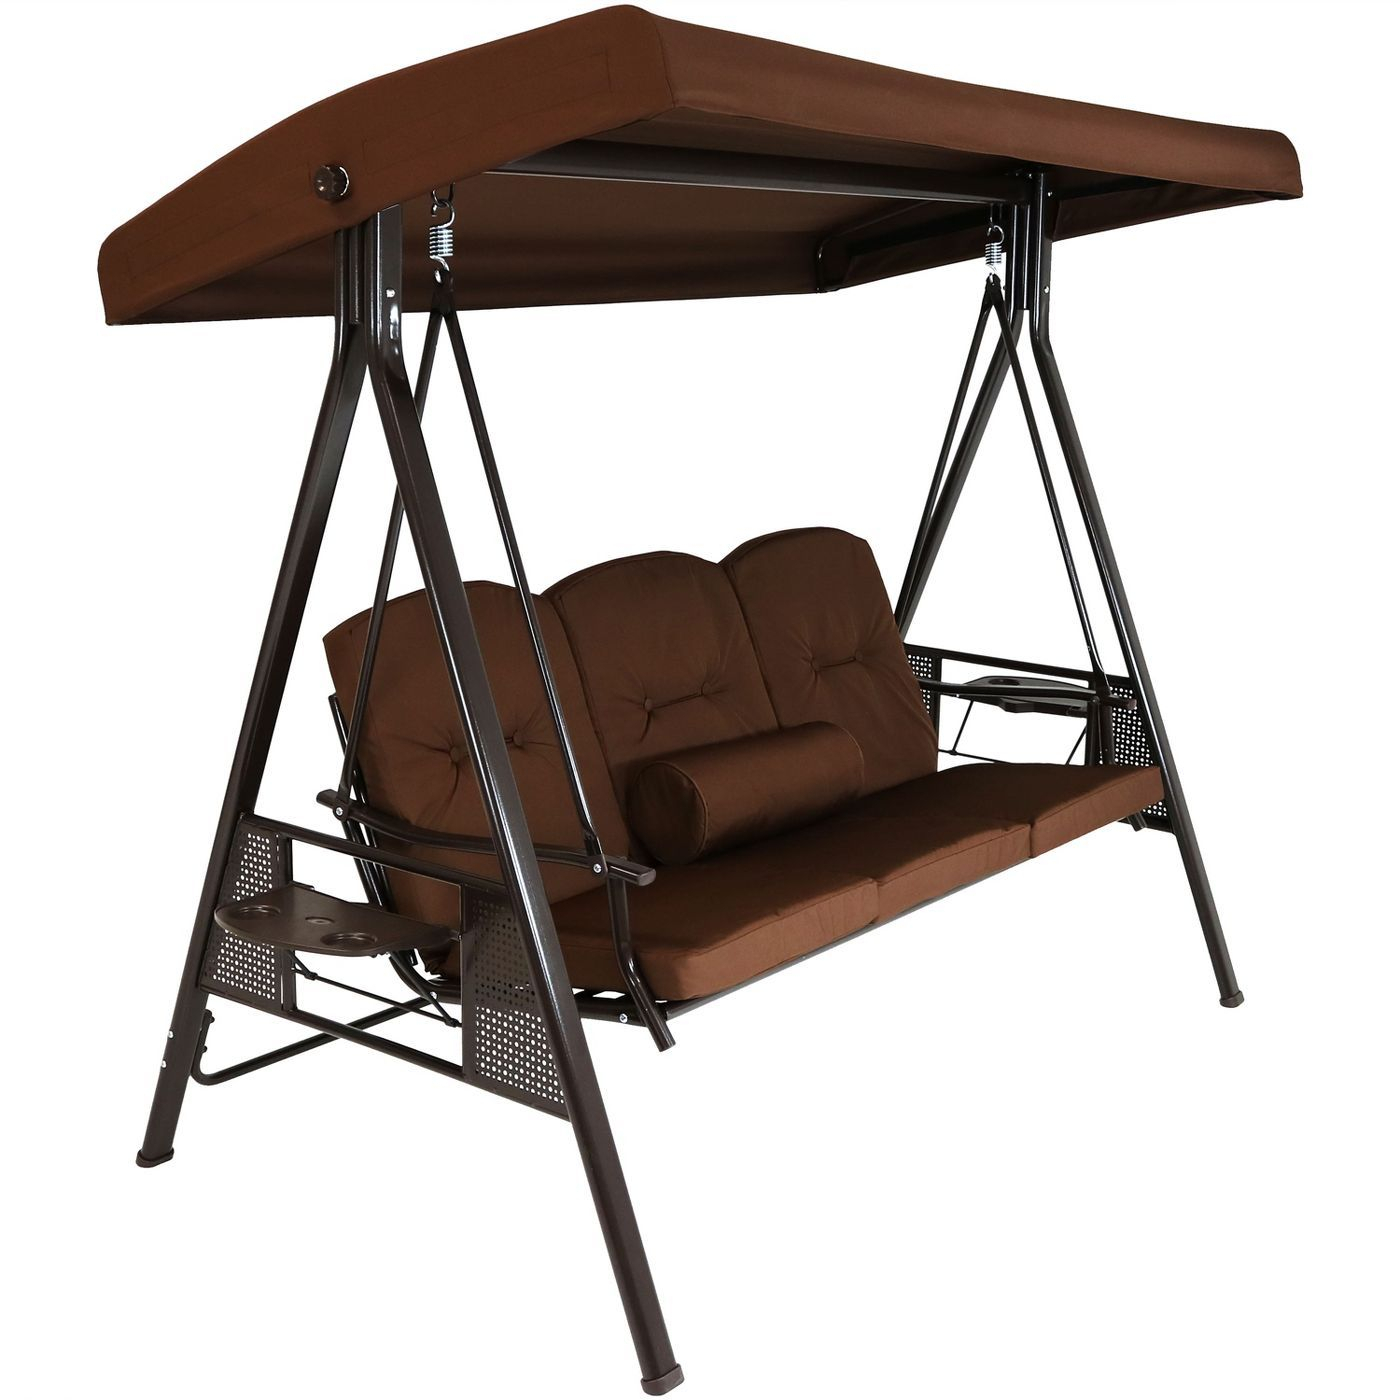 Sunnydaze Decor 3 Person Steel Frame Canopy Patio Swing With Regarding Canopy Patio Porch Swing With Stand (View 3 of 25)